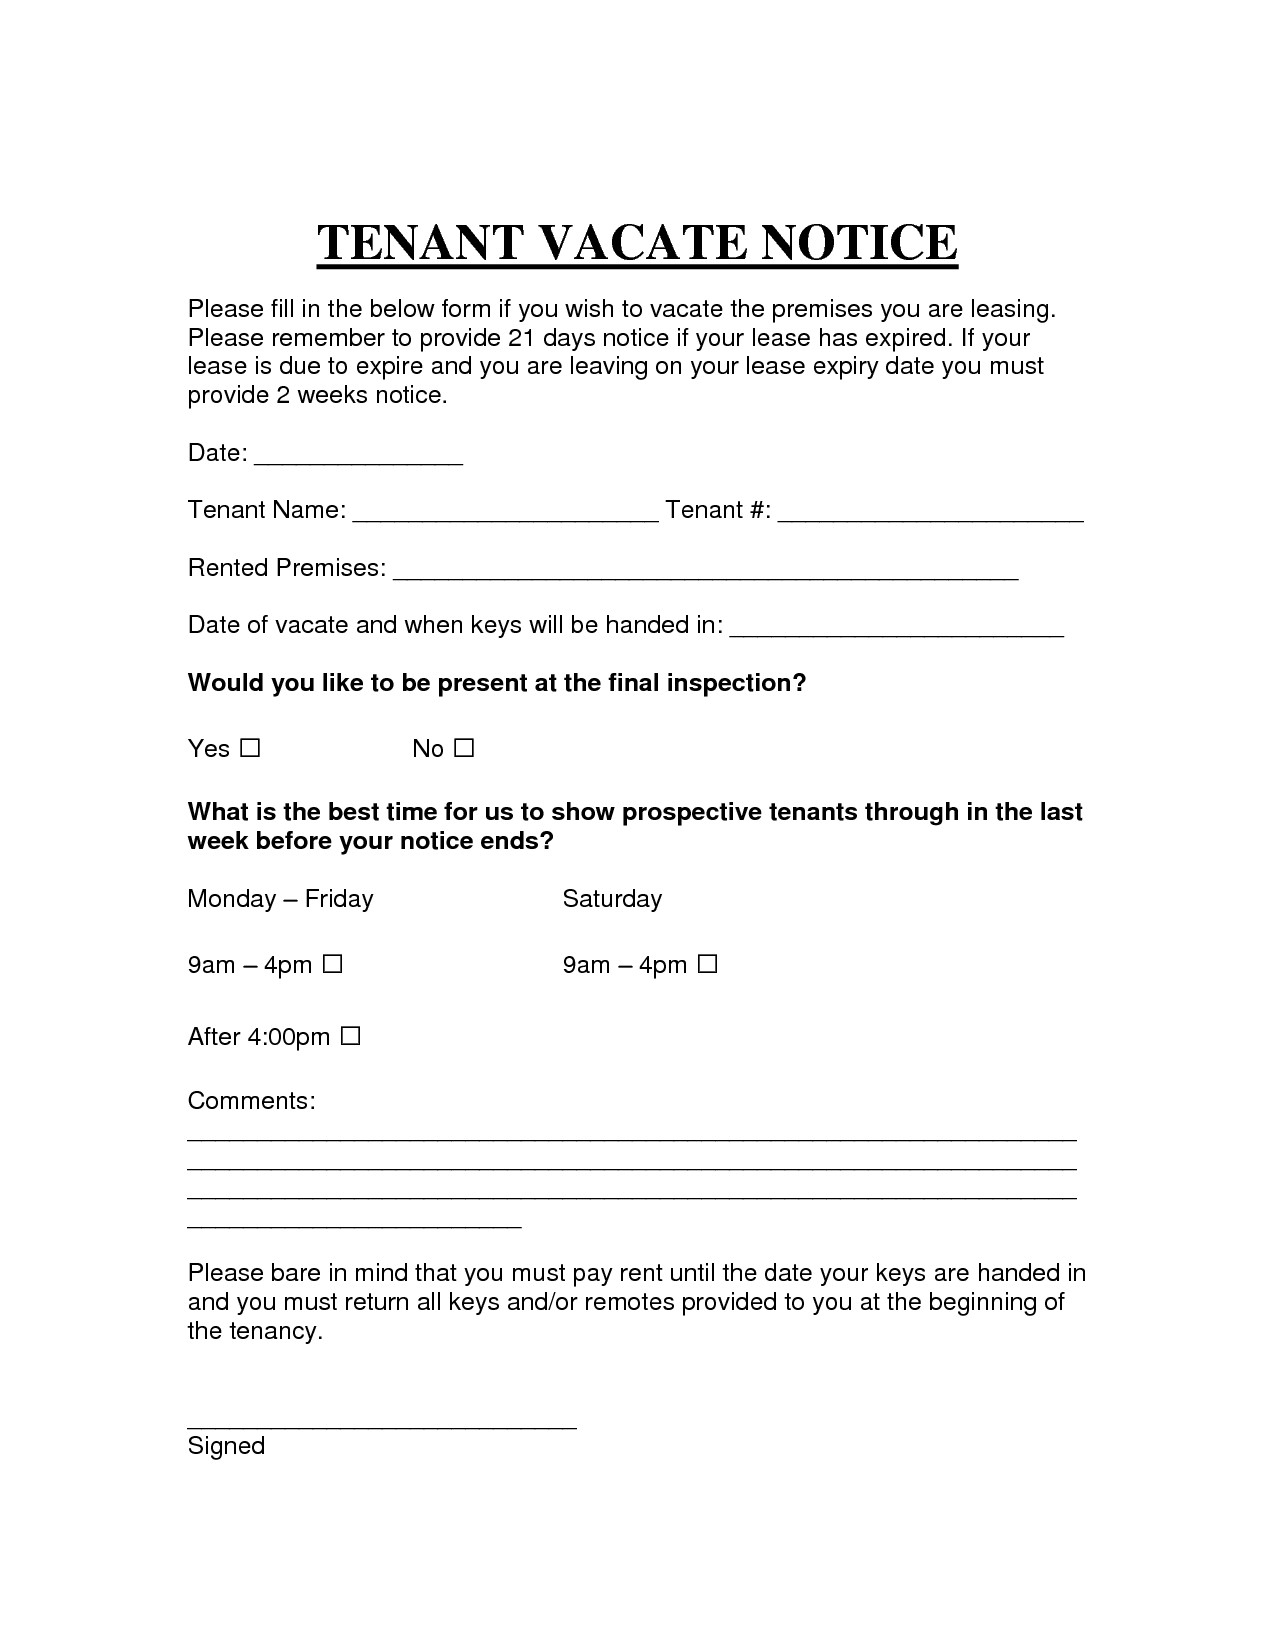 30 day notice to vacate letter template example-30 day notice to vacate letter to tenant template template letter to leave property new printable sample vacate notice form 11f 20-m